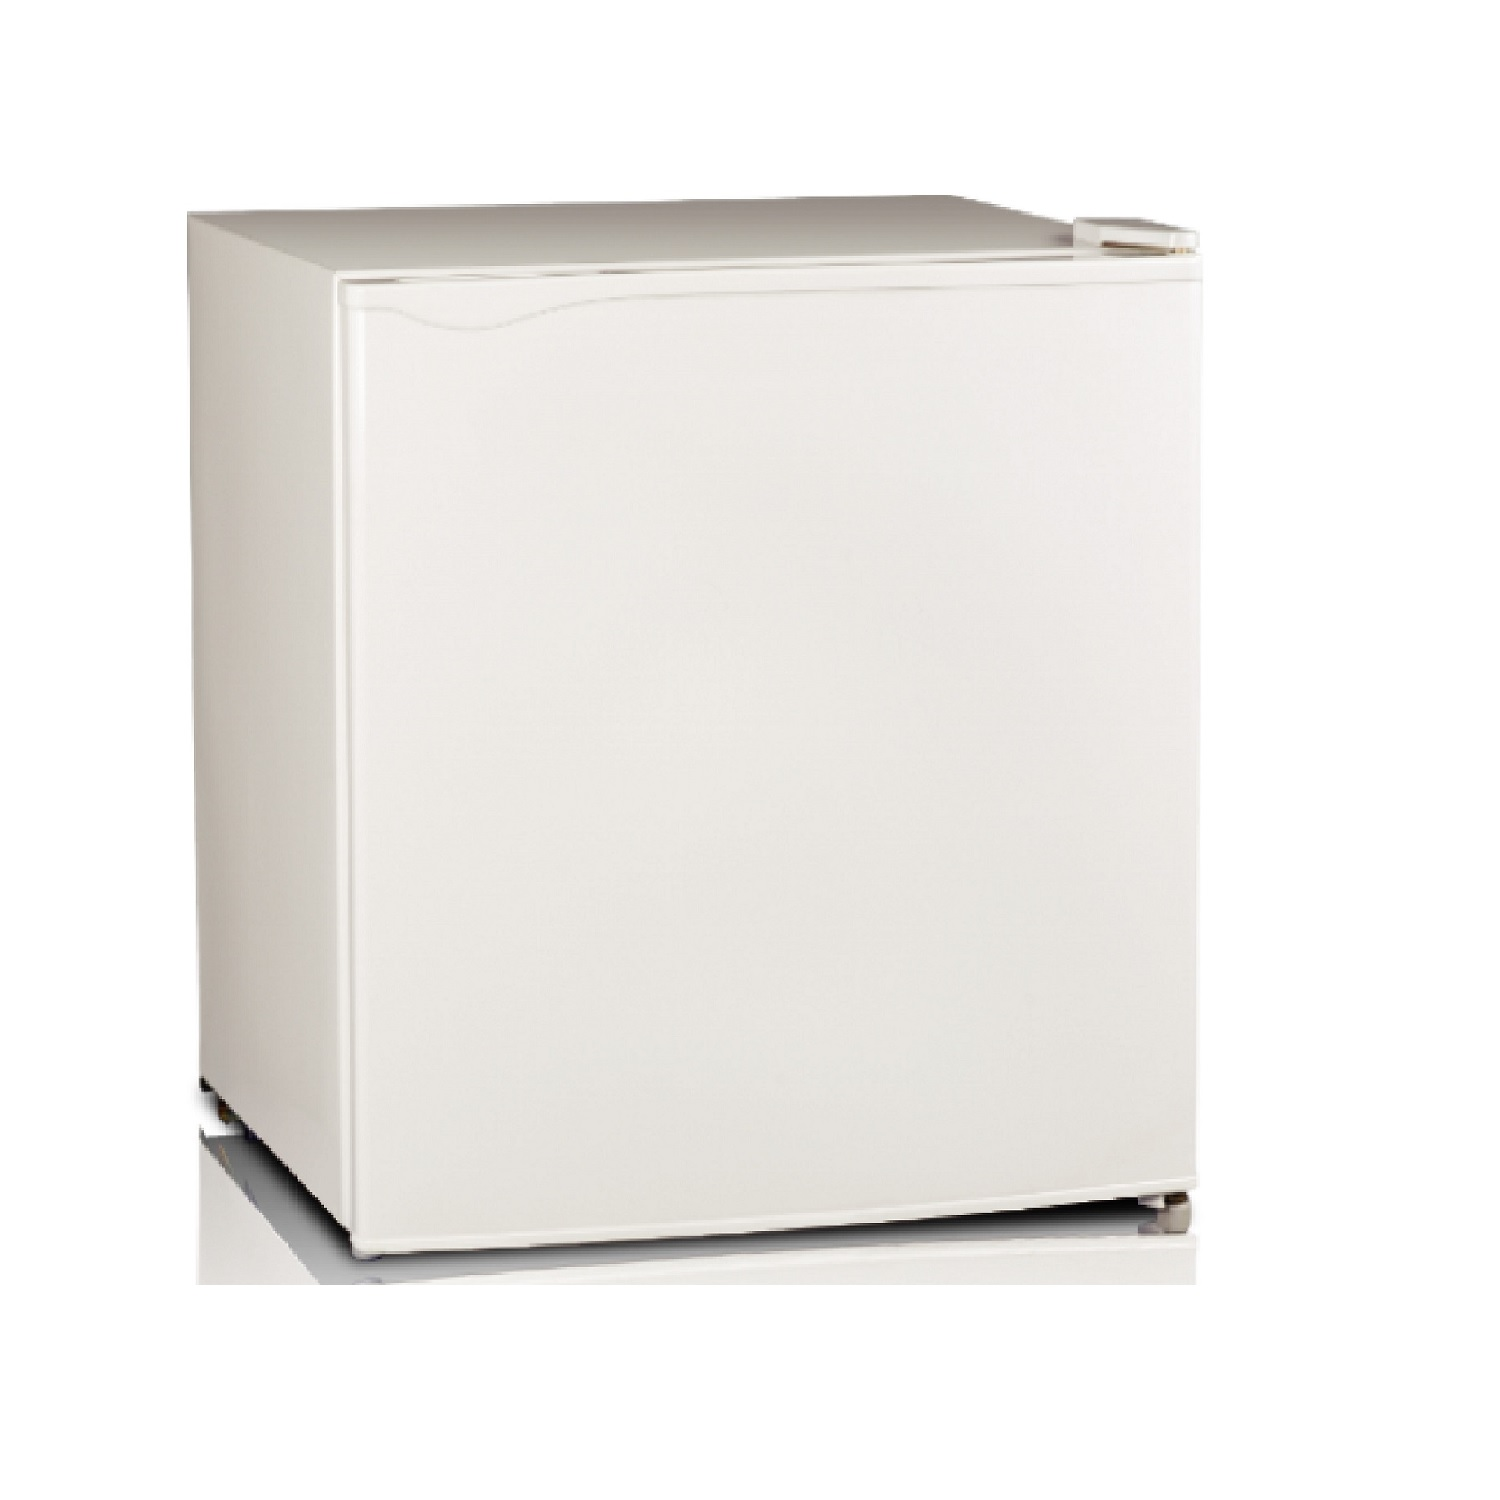 Equator-Midea Defrost Upright Freezer White - 1.1 cu. ft